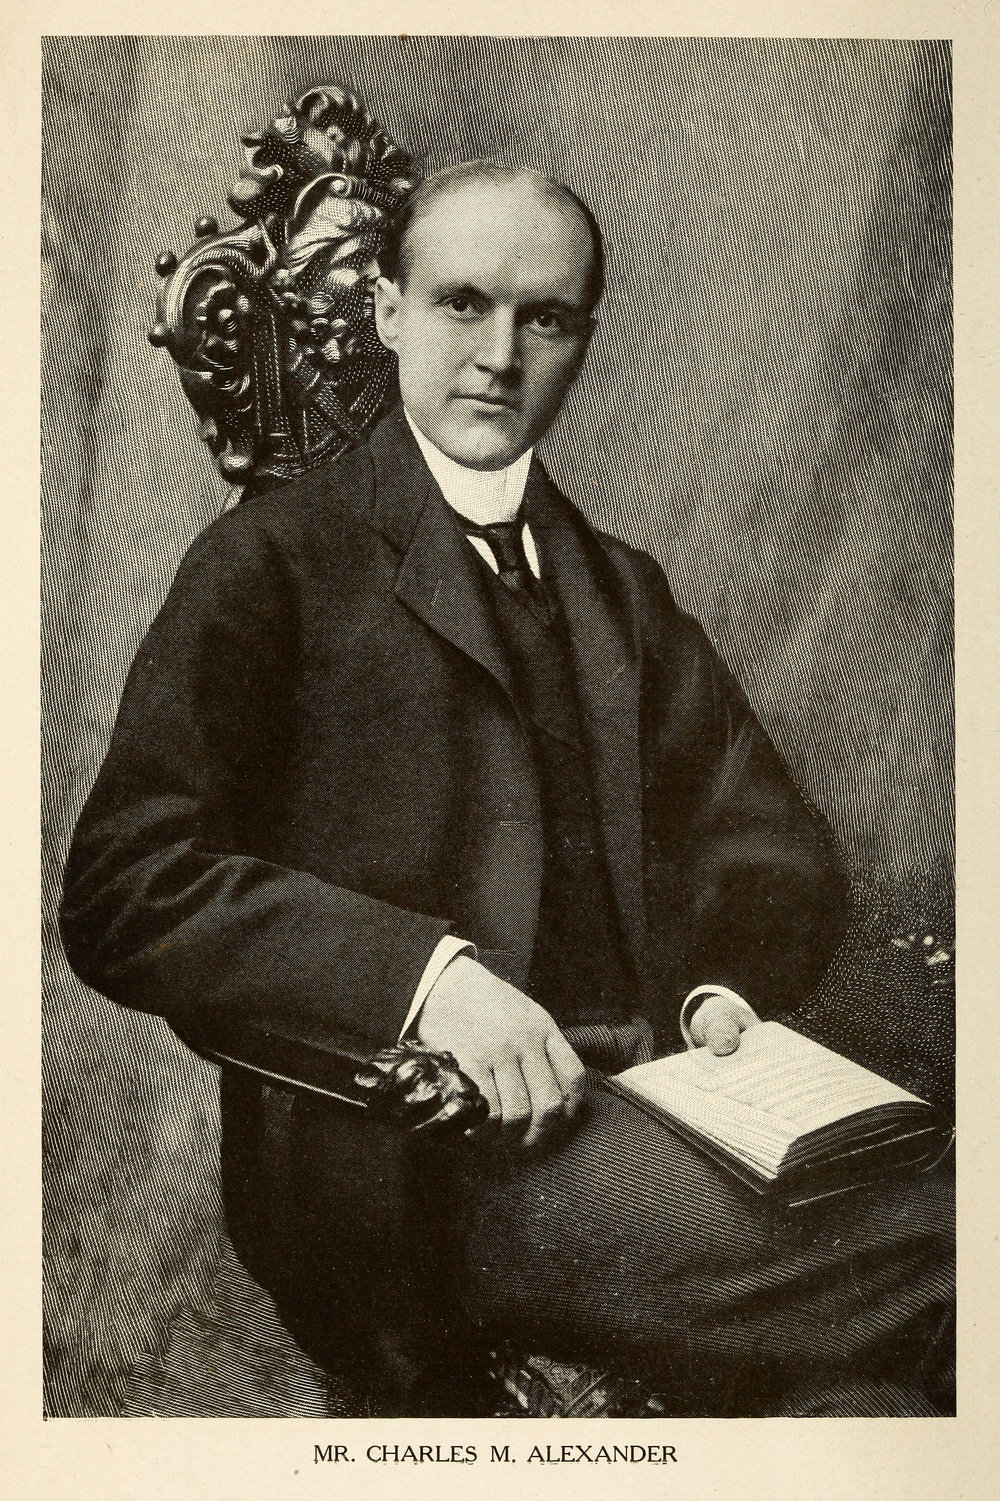 Charles M. Alexander , in George T.B. Davis,  Twice Around the World with Alexander, Prince of Gospel Singers  (NY: The Christian Herald, 1907).